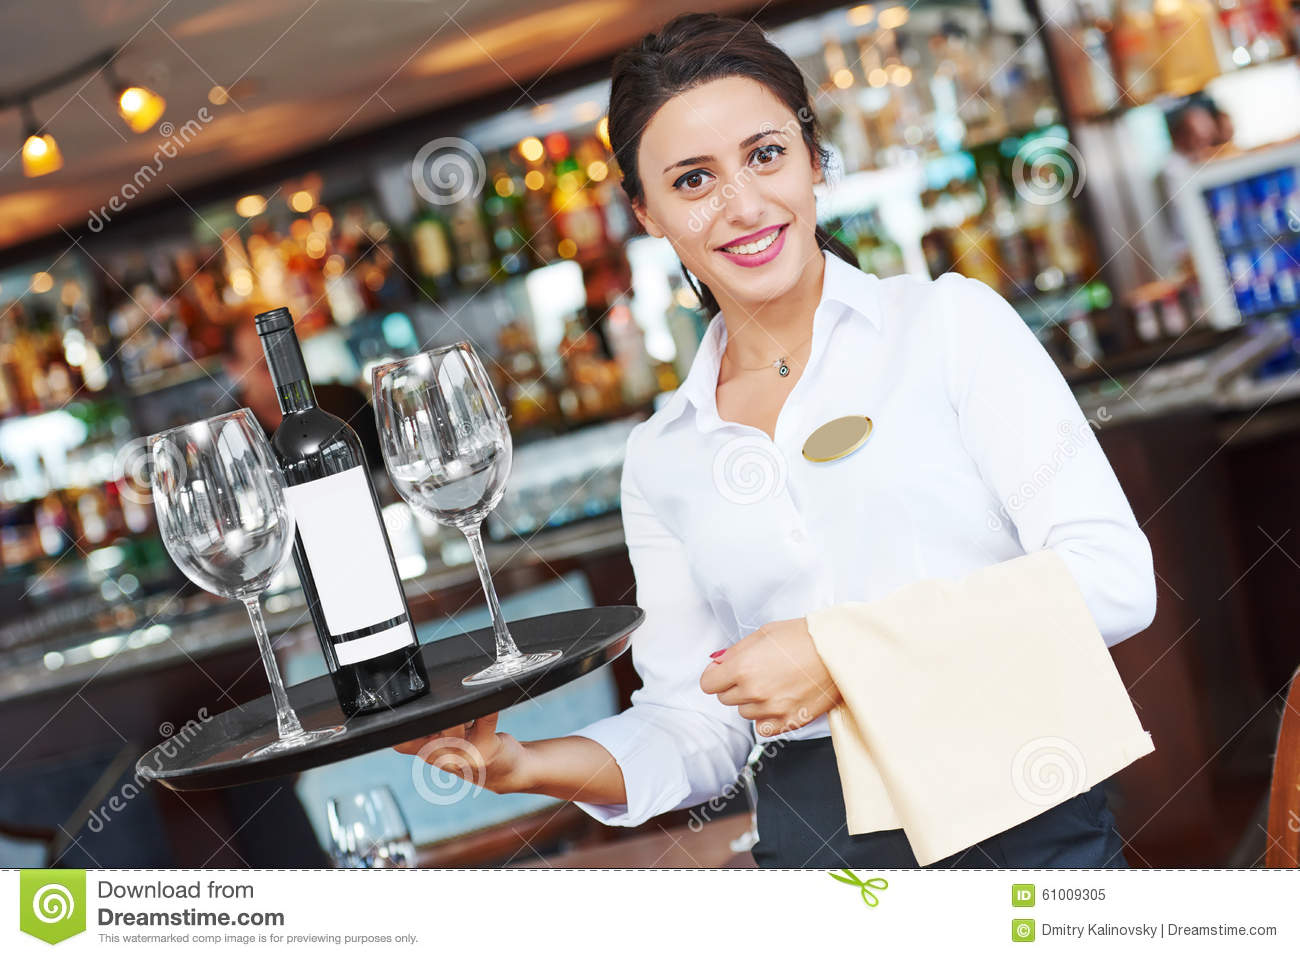 Waiter Restaurant Catering Service Female Cheerful Worker With Tray Glasses And Bottle Of Wine